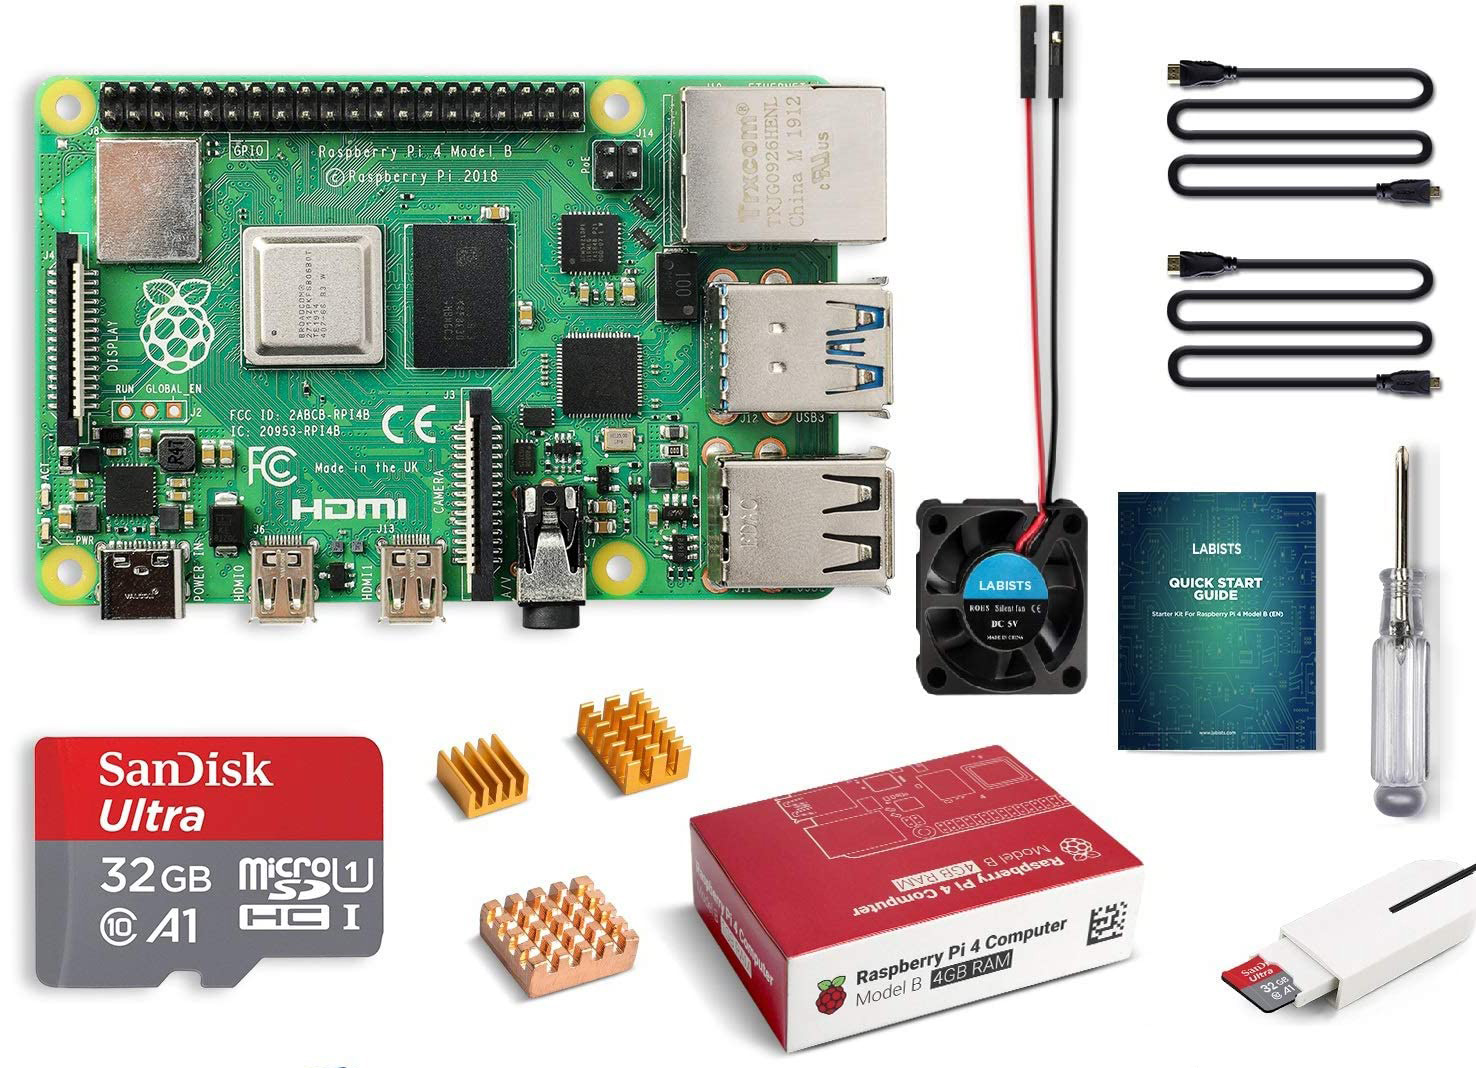 The ultimate Raspberry Pi 4 starter kit is 15% off today at Amazon